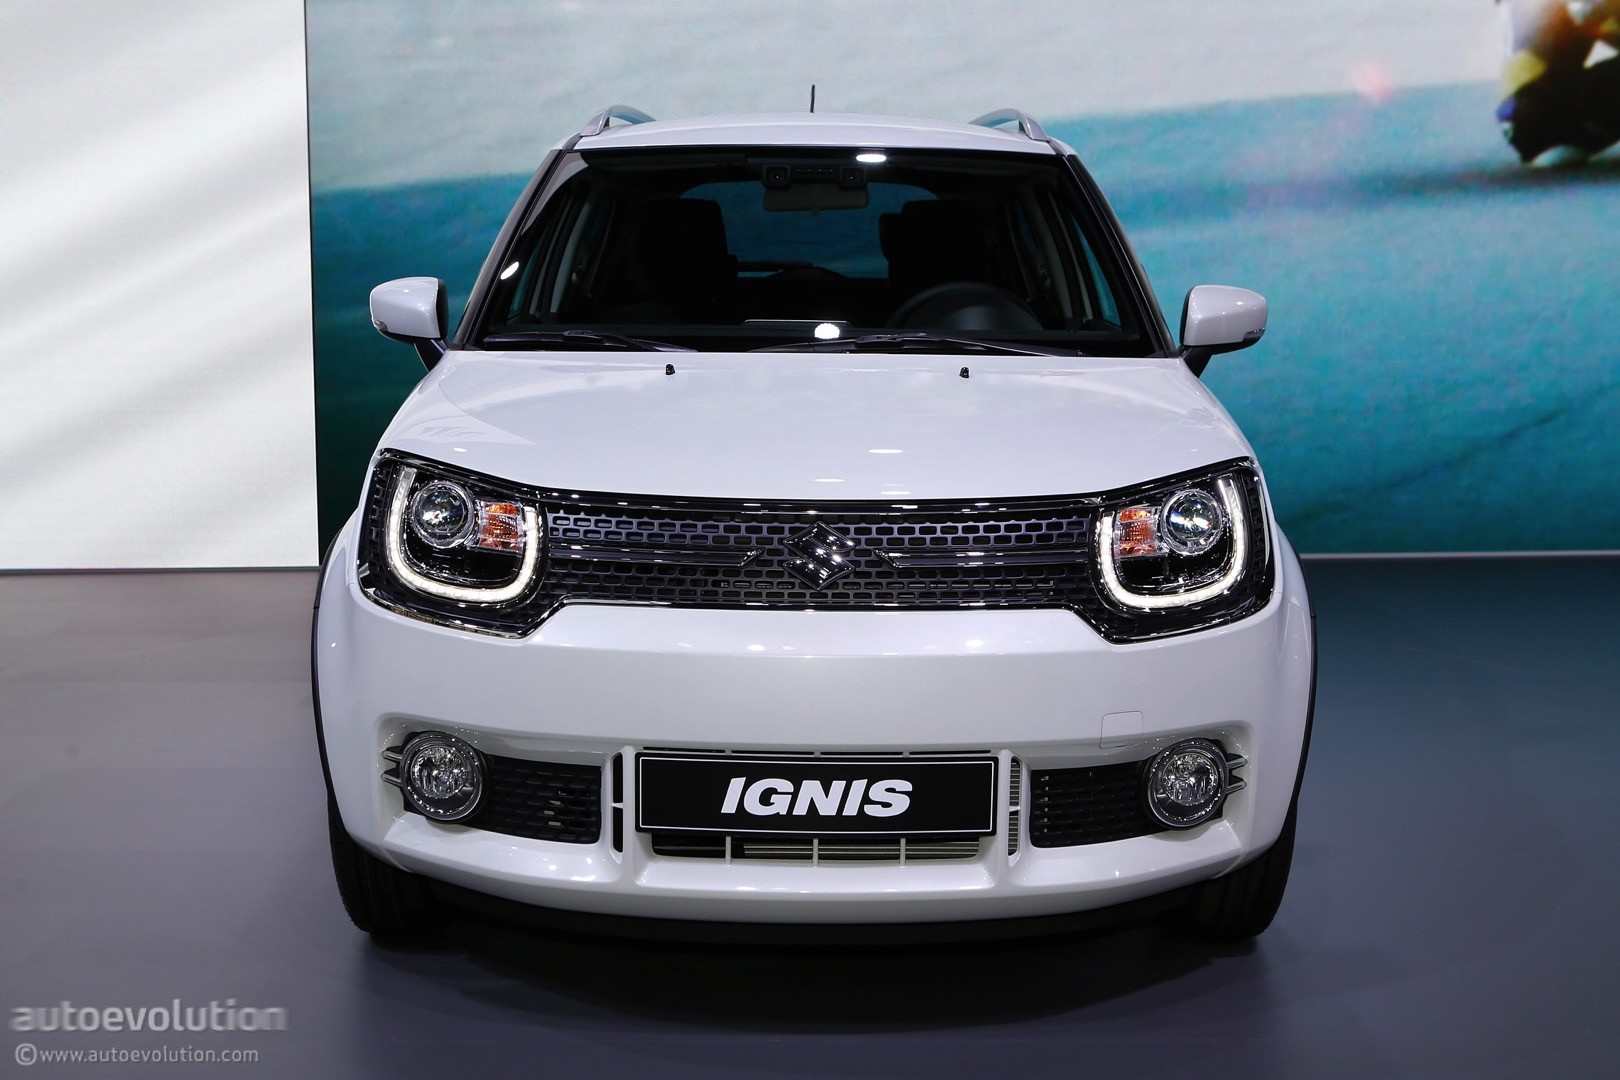 2017 Suzuki Ignis Locks Down On Paris, SX4 S-Cross Facelift Still ...